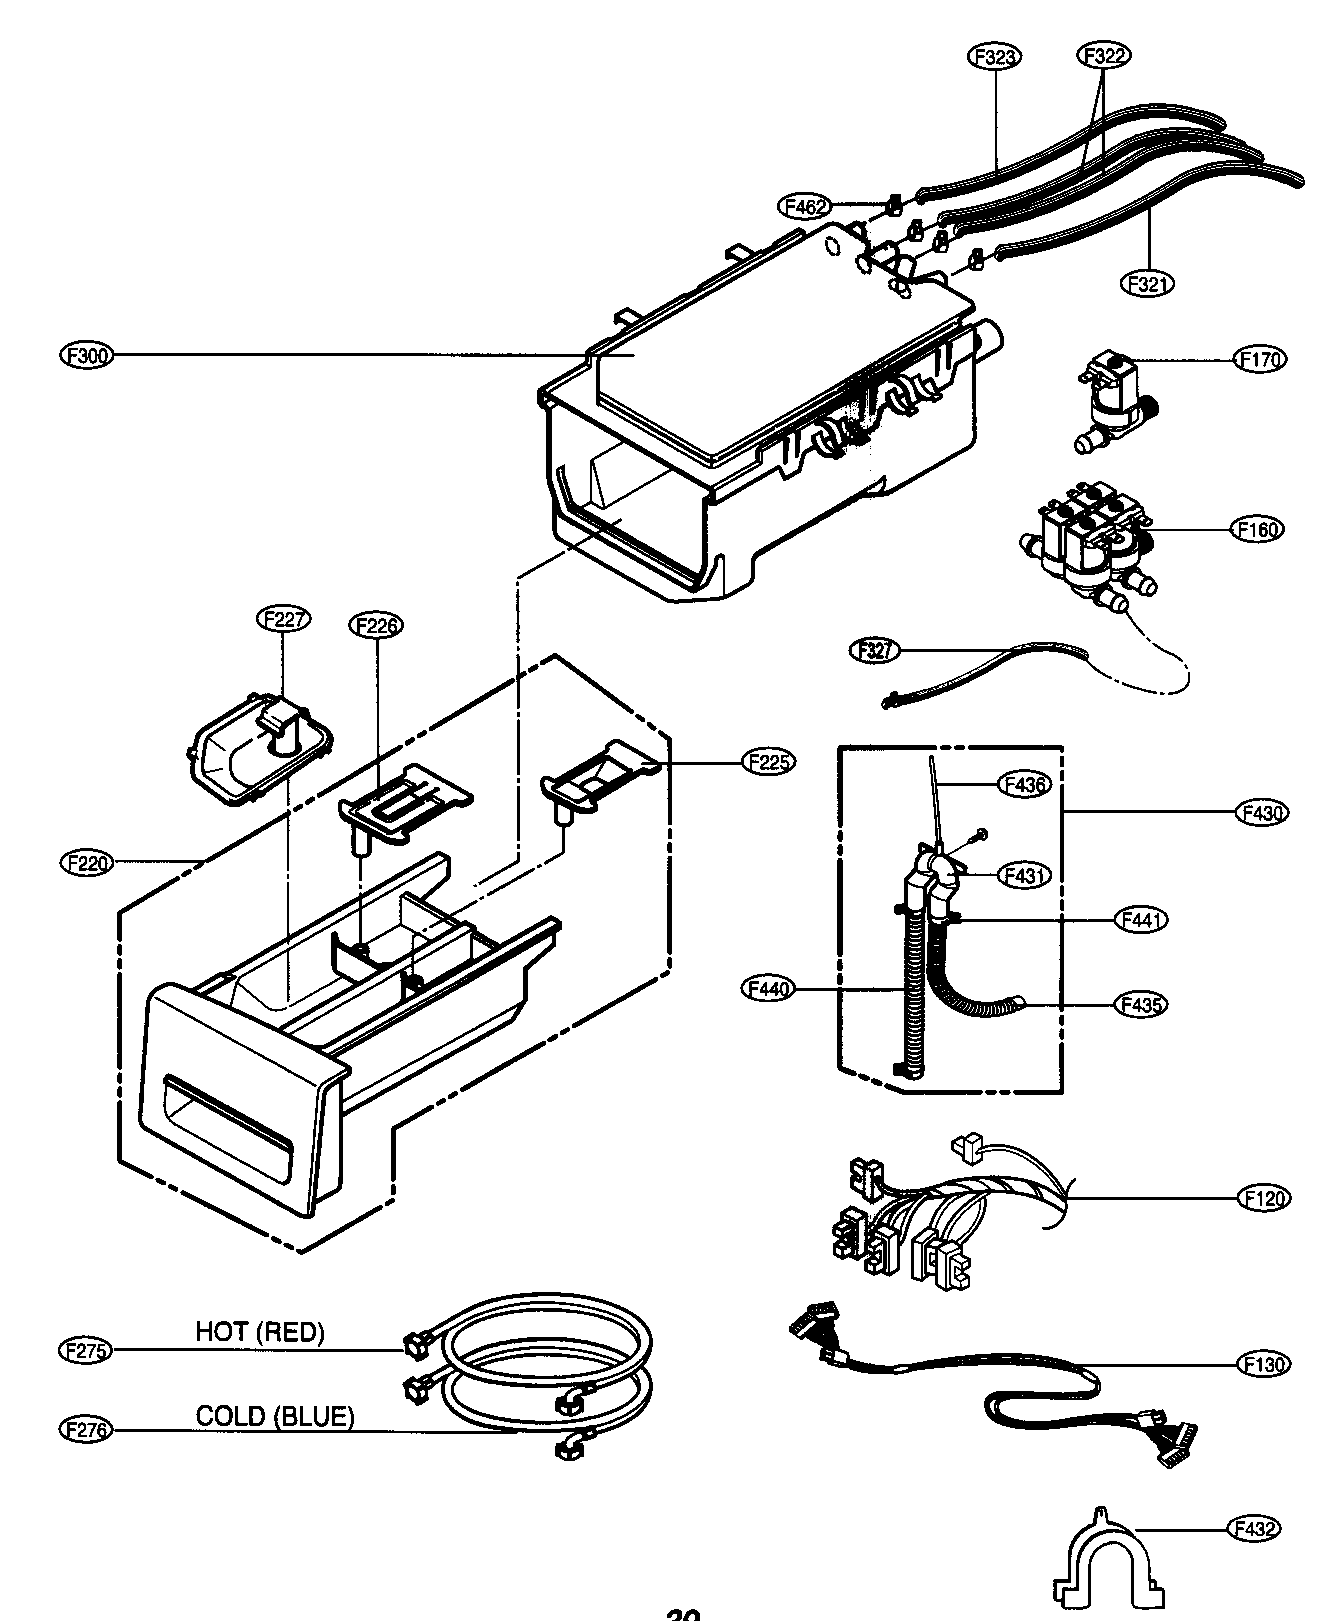 DISPENSER ASSY Diagram & Parts List for Model wm2496hwm LG